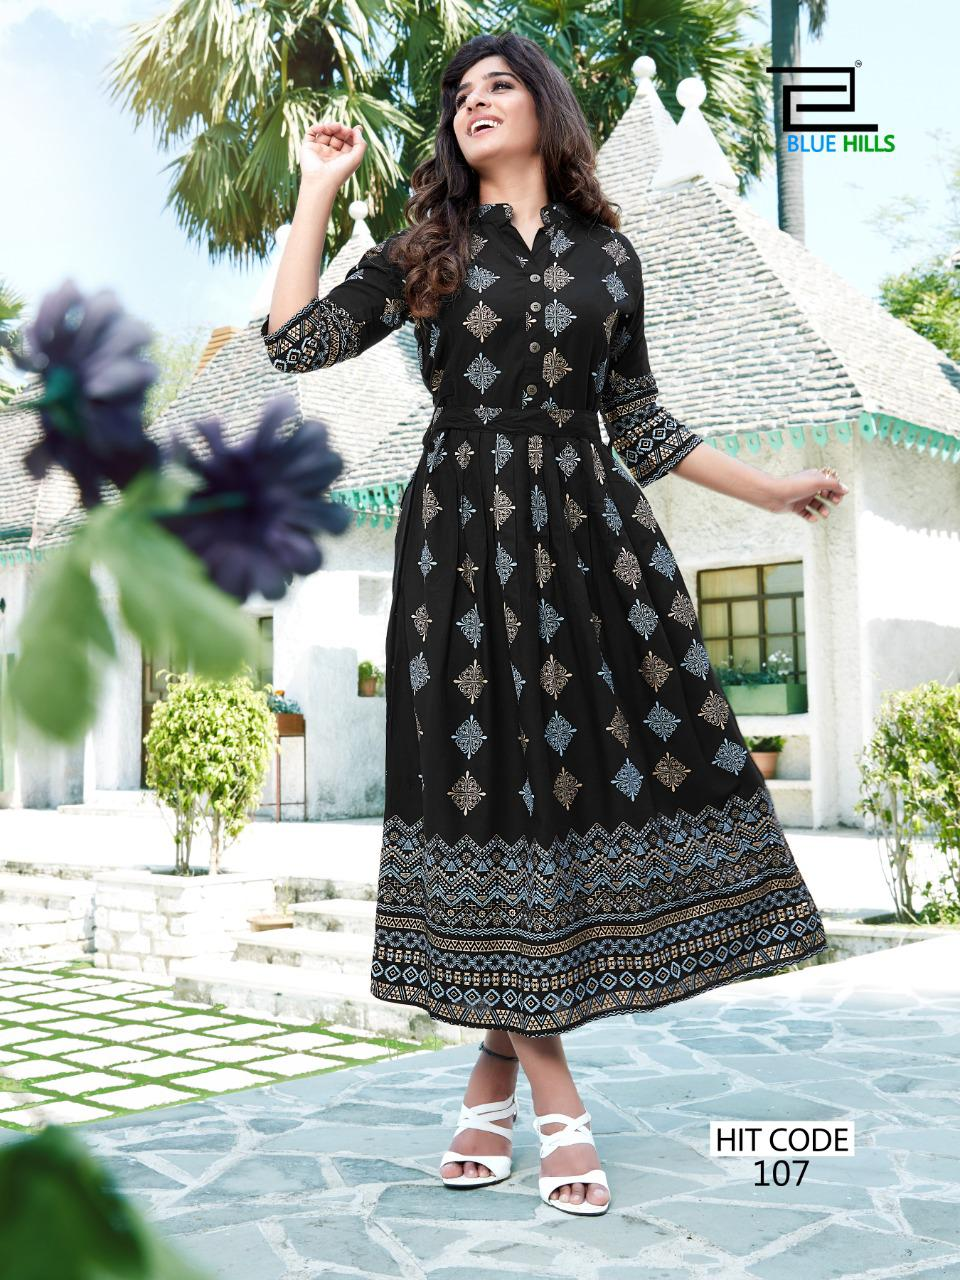 Blue Hills Walkway Hit Kurti Wholesale Catalog 10 Pcs 7 - Blue Hills Walkway Hit Kurti Wholesale Catalog 10 Pcs